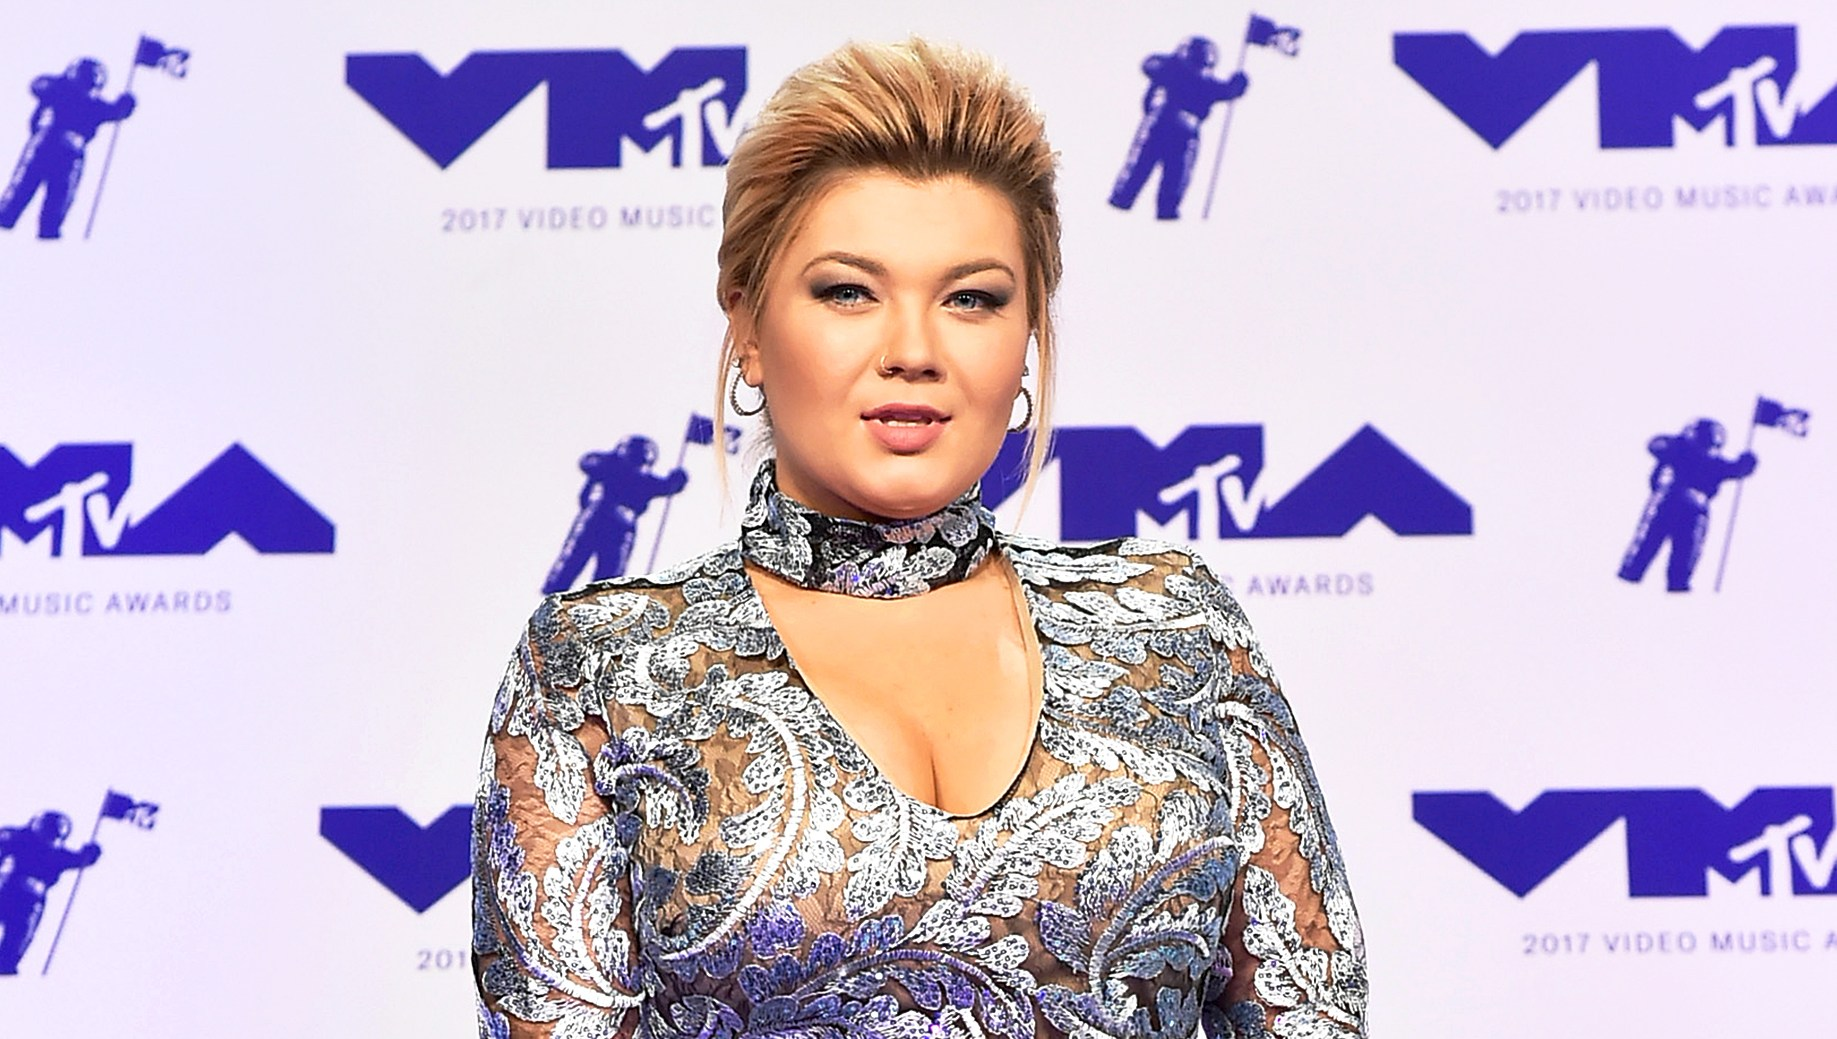 Amber Portwood attends the 2017 MTV Video Music Awards at The Forum in Inglewood, California.